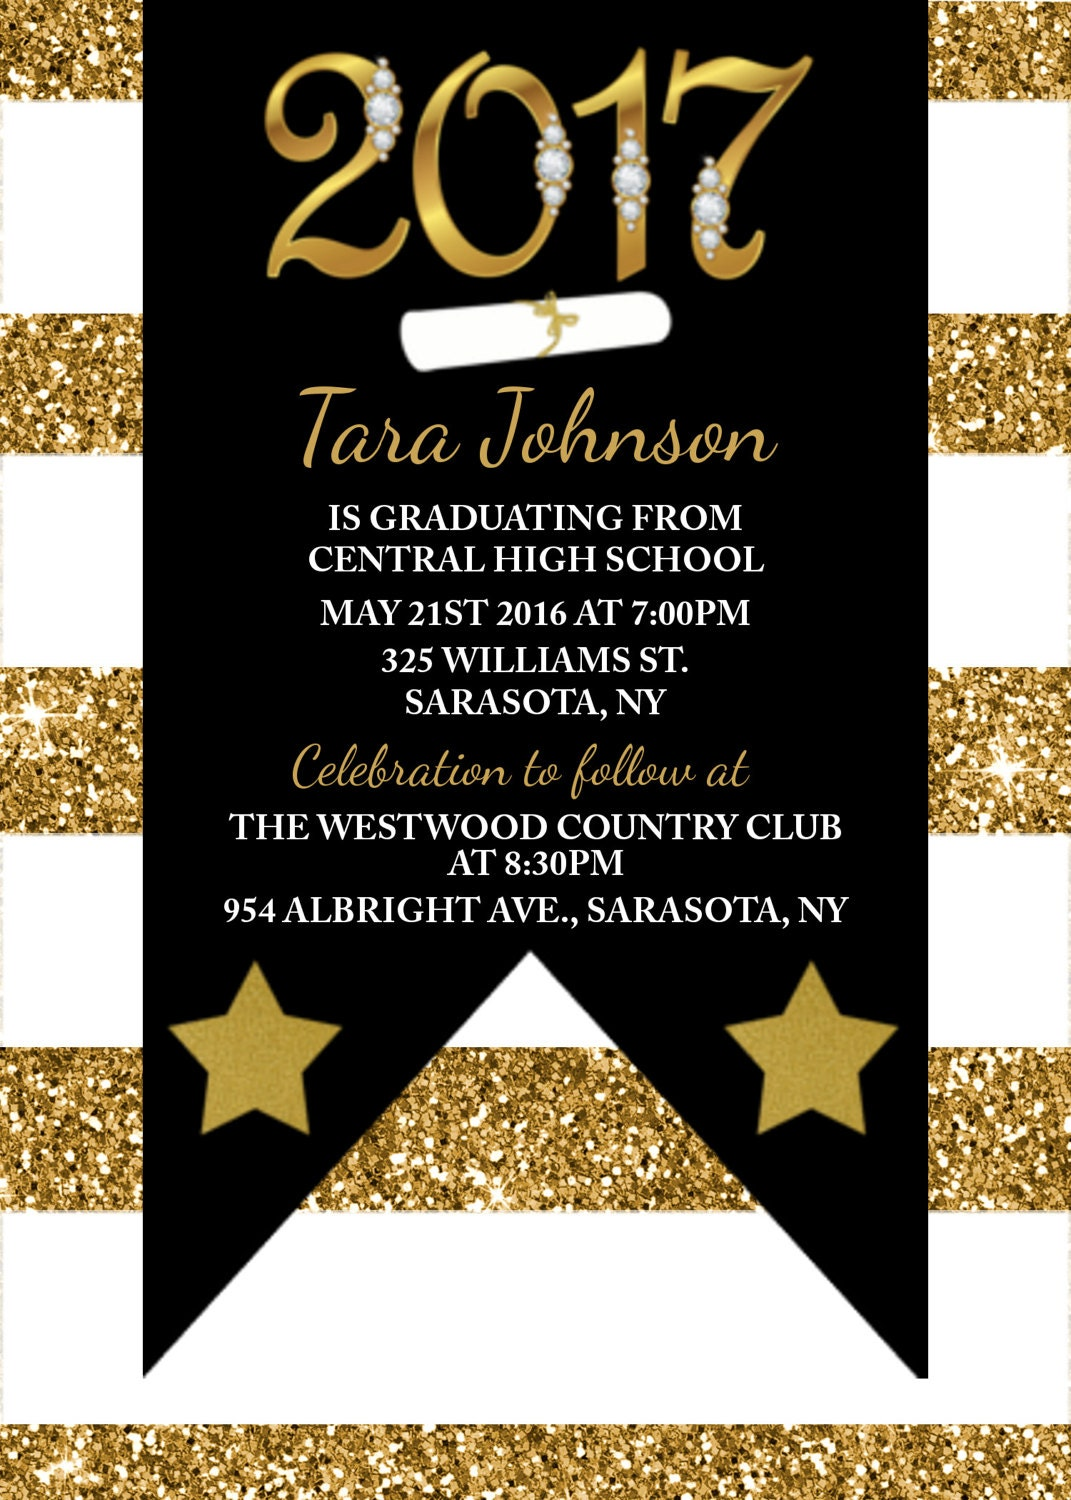 Glitter Graduation Invitation Graduation invitations Class of 2017 – Black and Gold Graduation Invitations